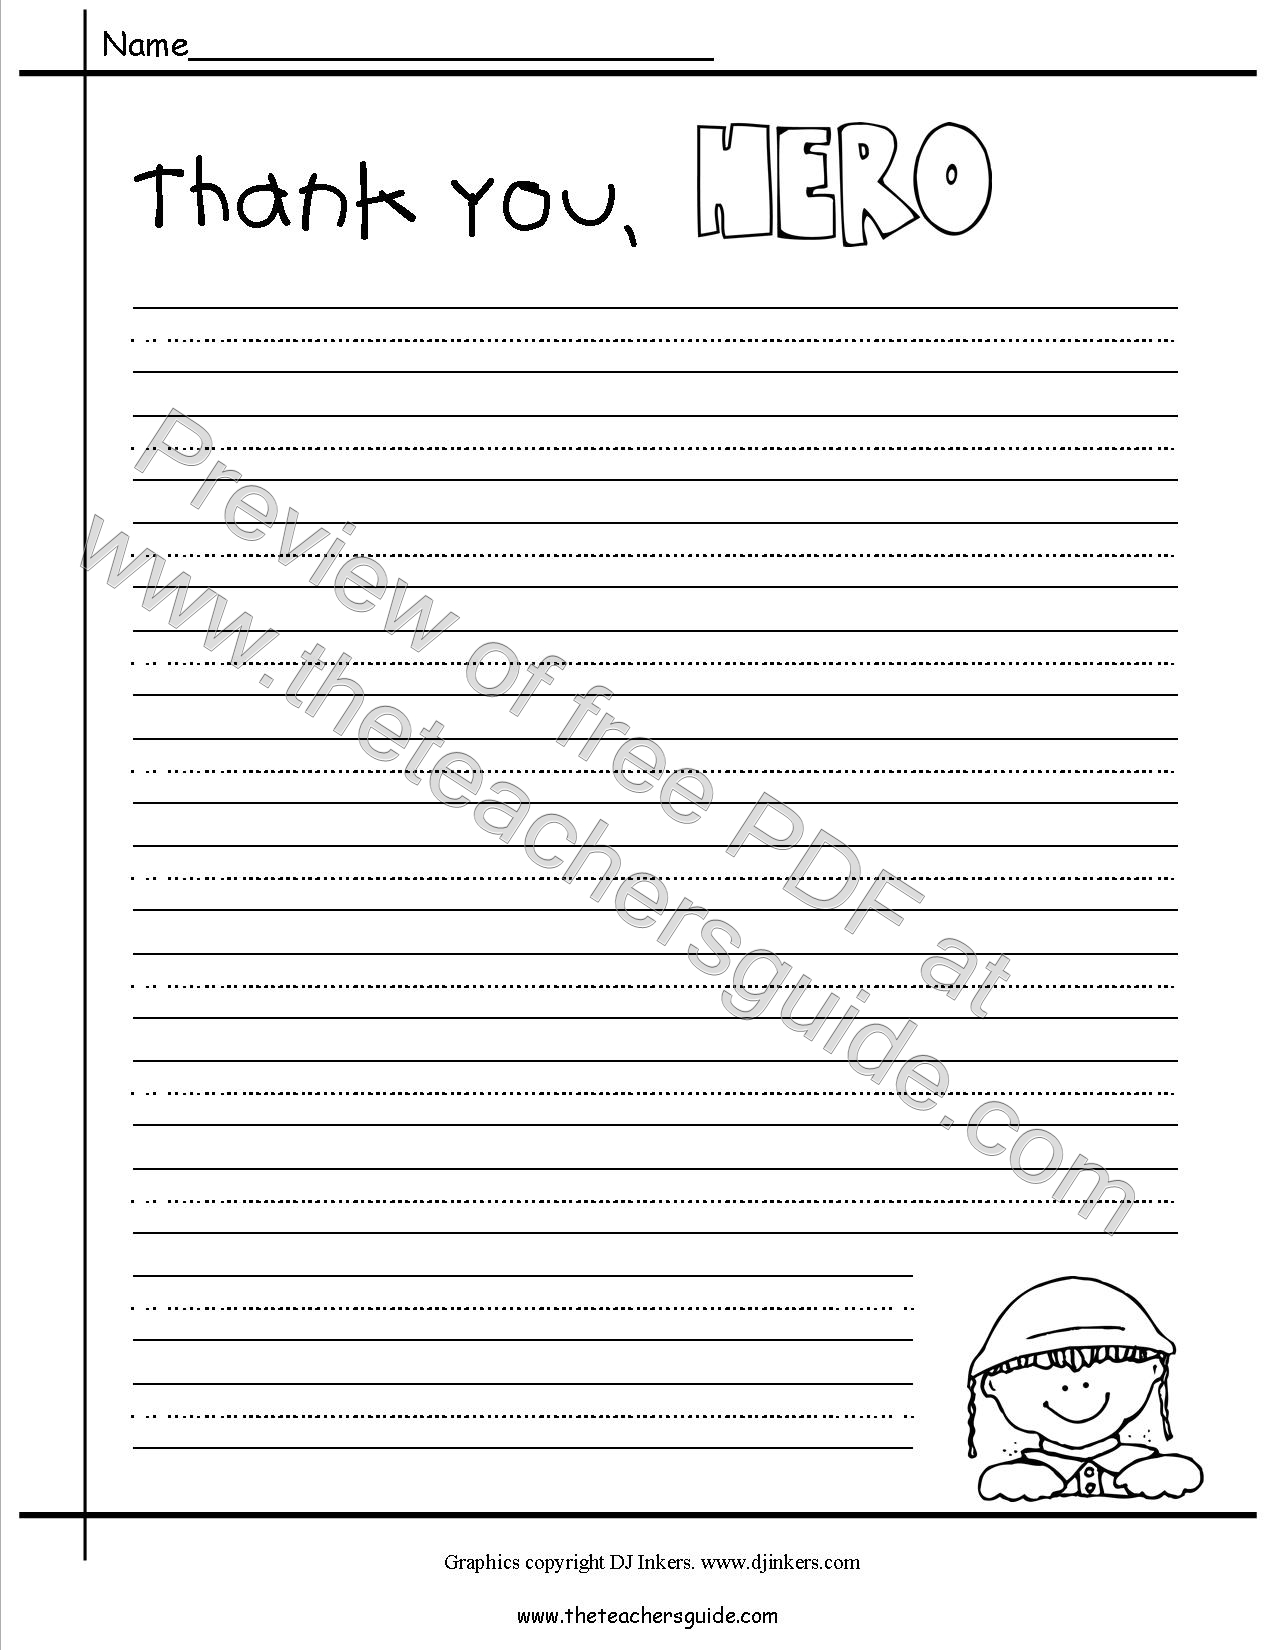 Printables Veterans Day Worksheets veterans day lesson plans themes printouts crafts thank you hero writing paper